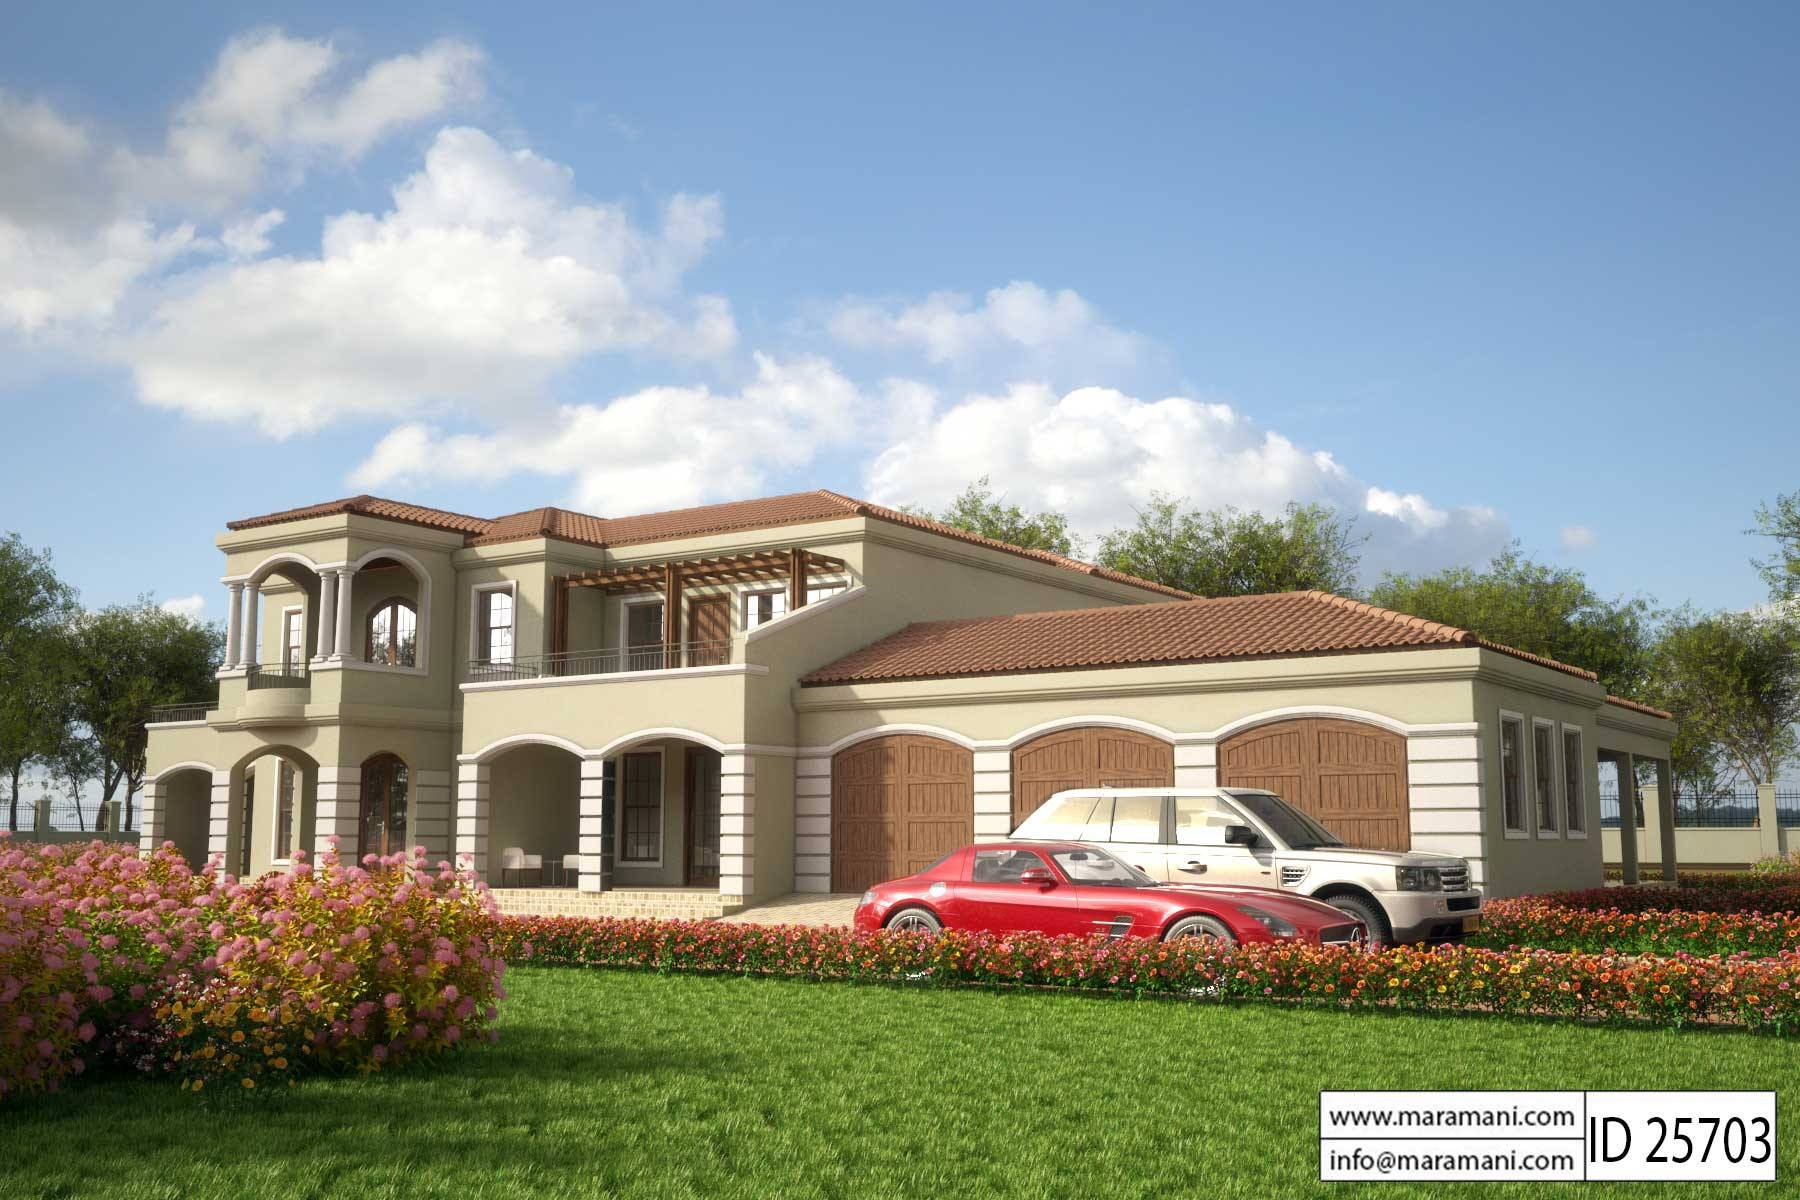 5 bedroom house plan id 25703 house plans by maramani